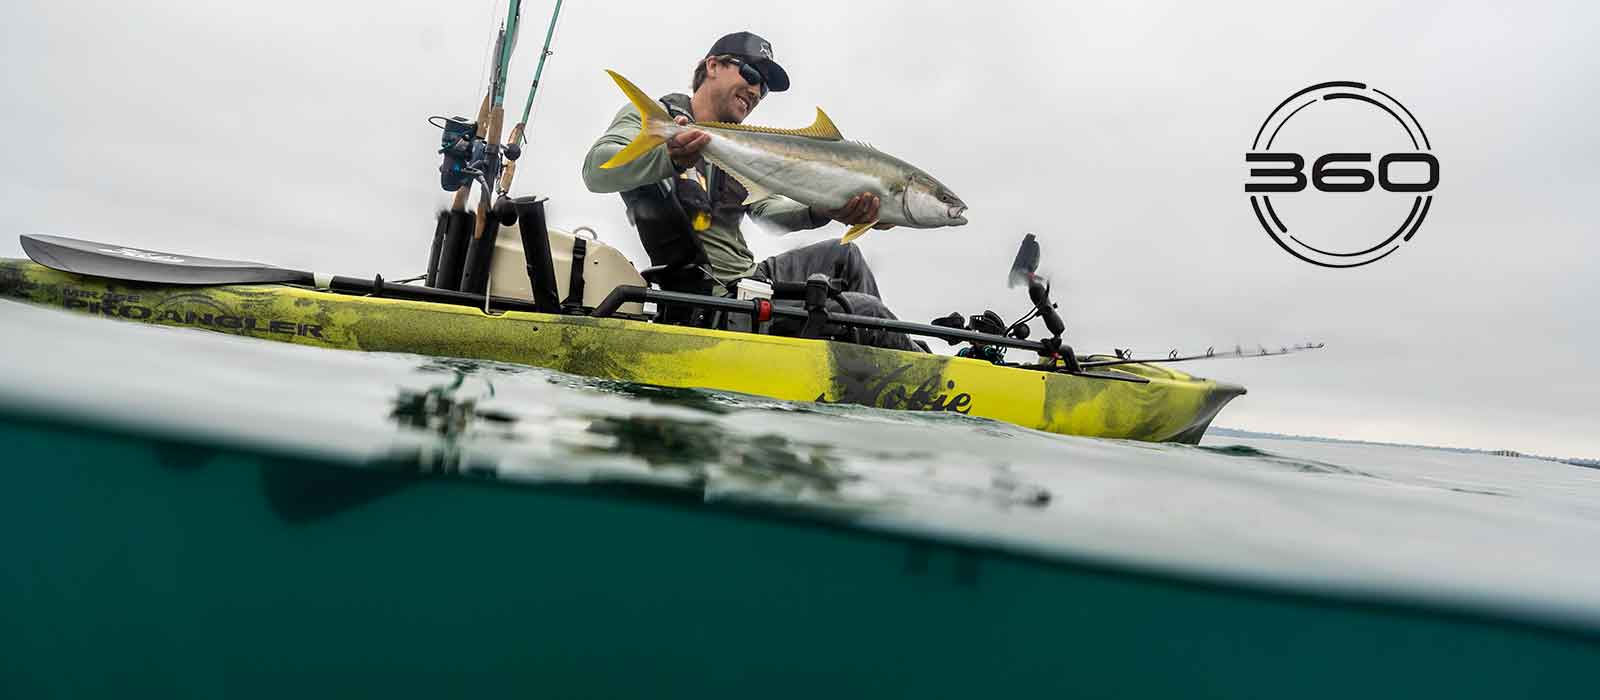 Click to see the Hobie Pro Angler 360 kayaks